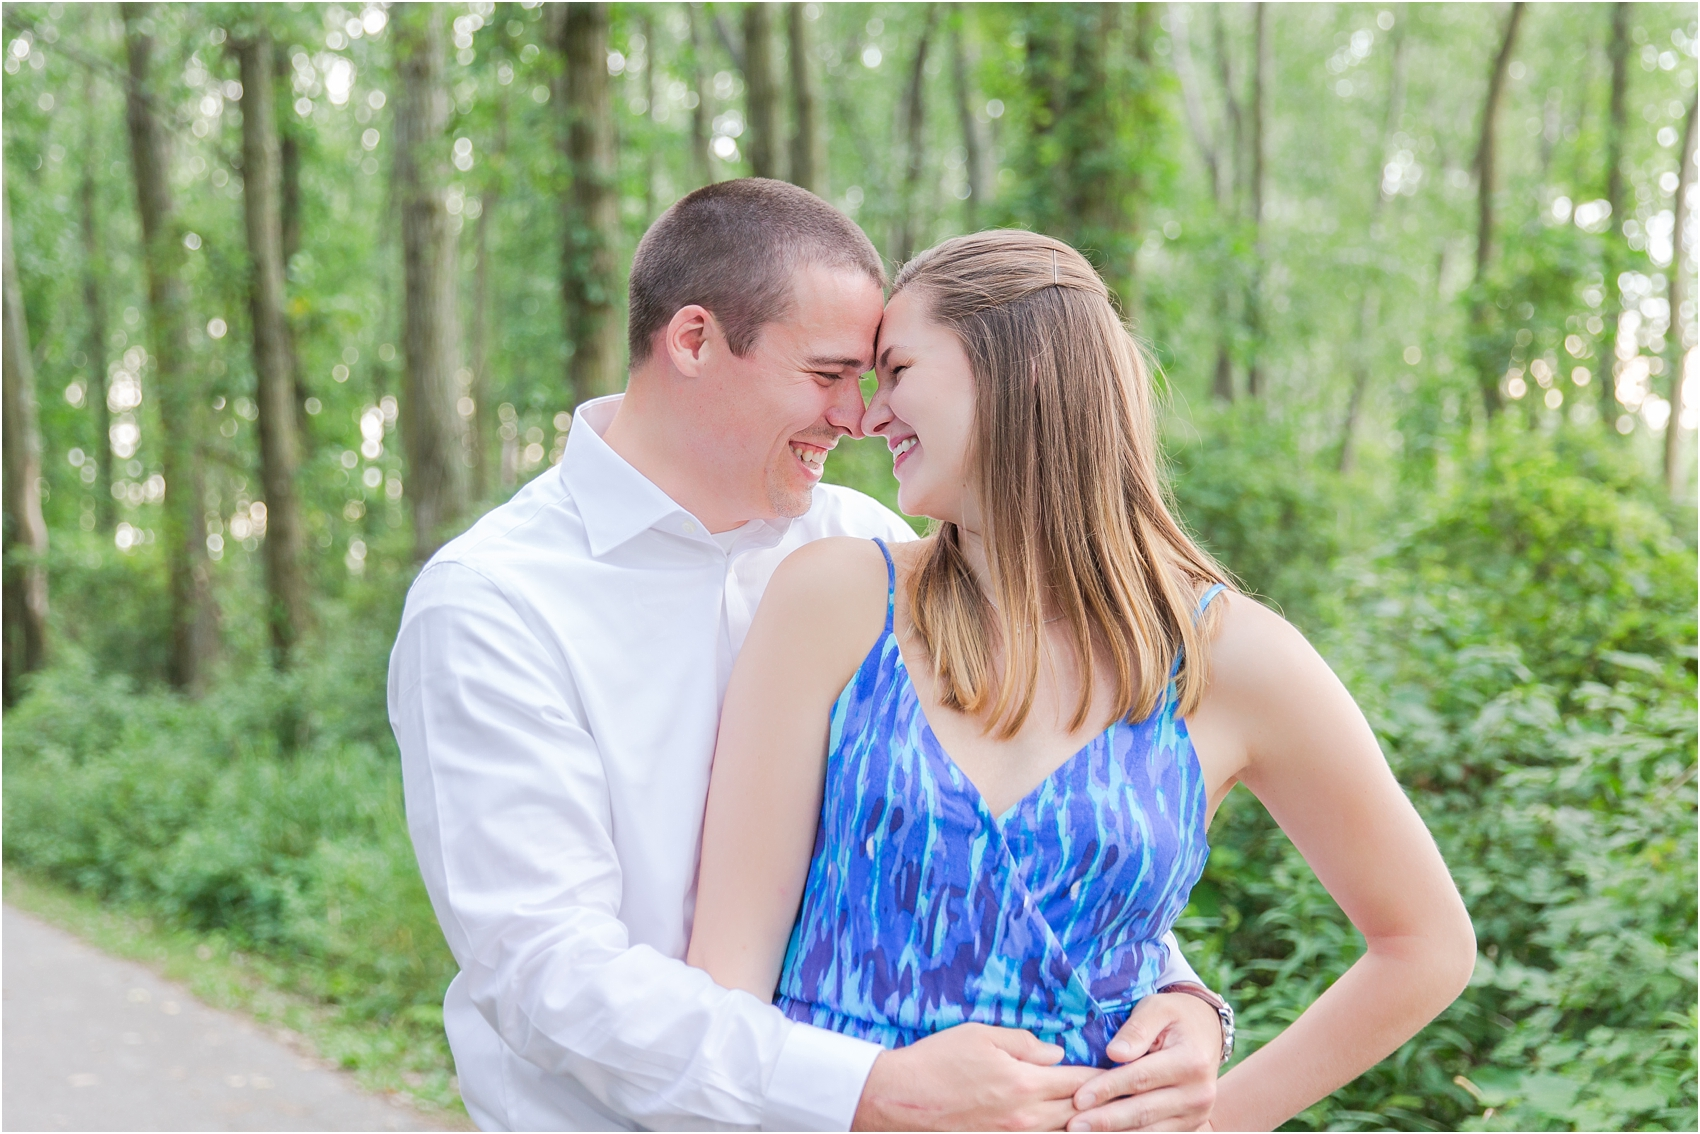 light-hearted-sunset-engagement-photos-at-the-beach-in-oregon-oh-by-courtney-carolyn-photography_0001.jpg